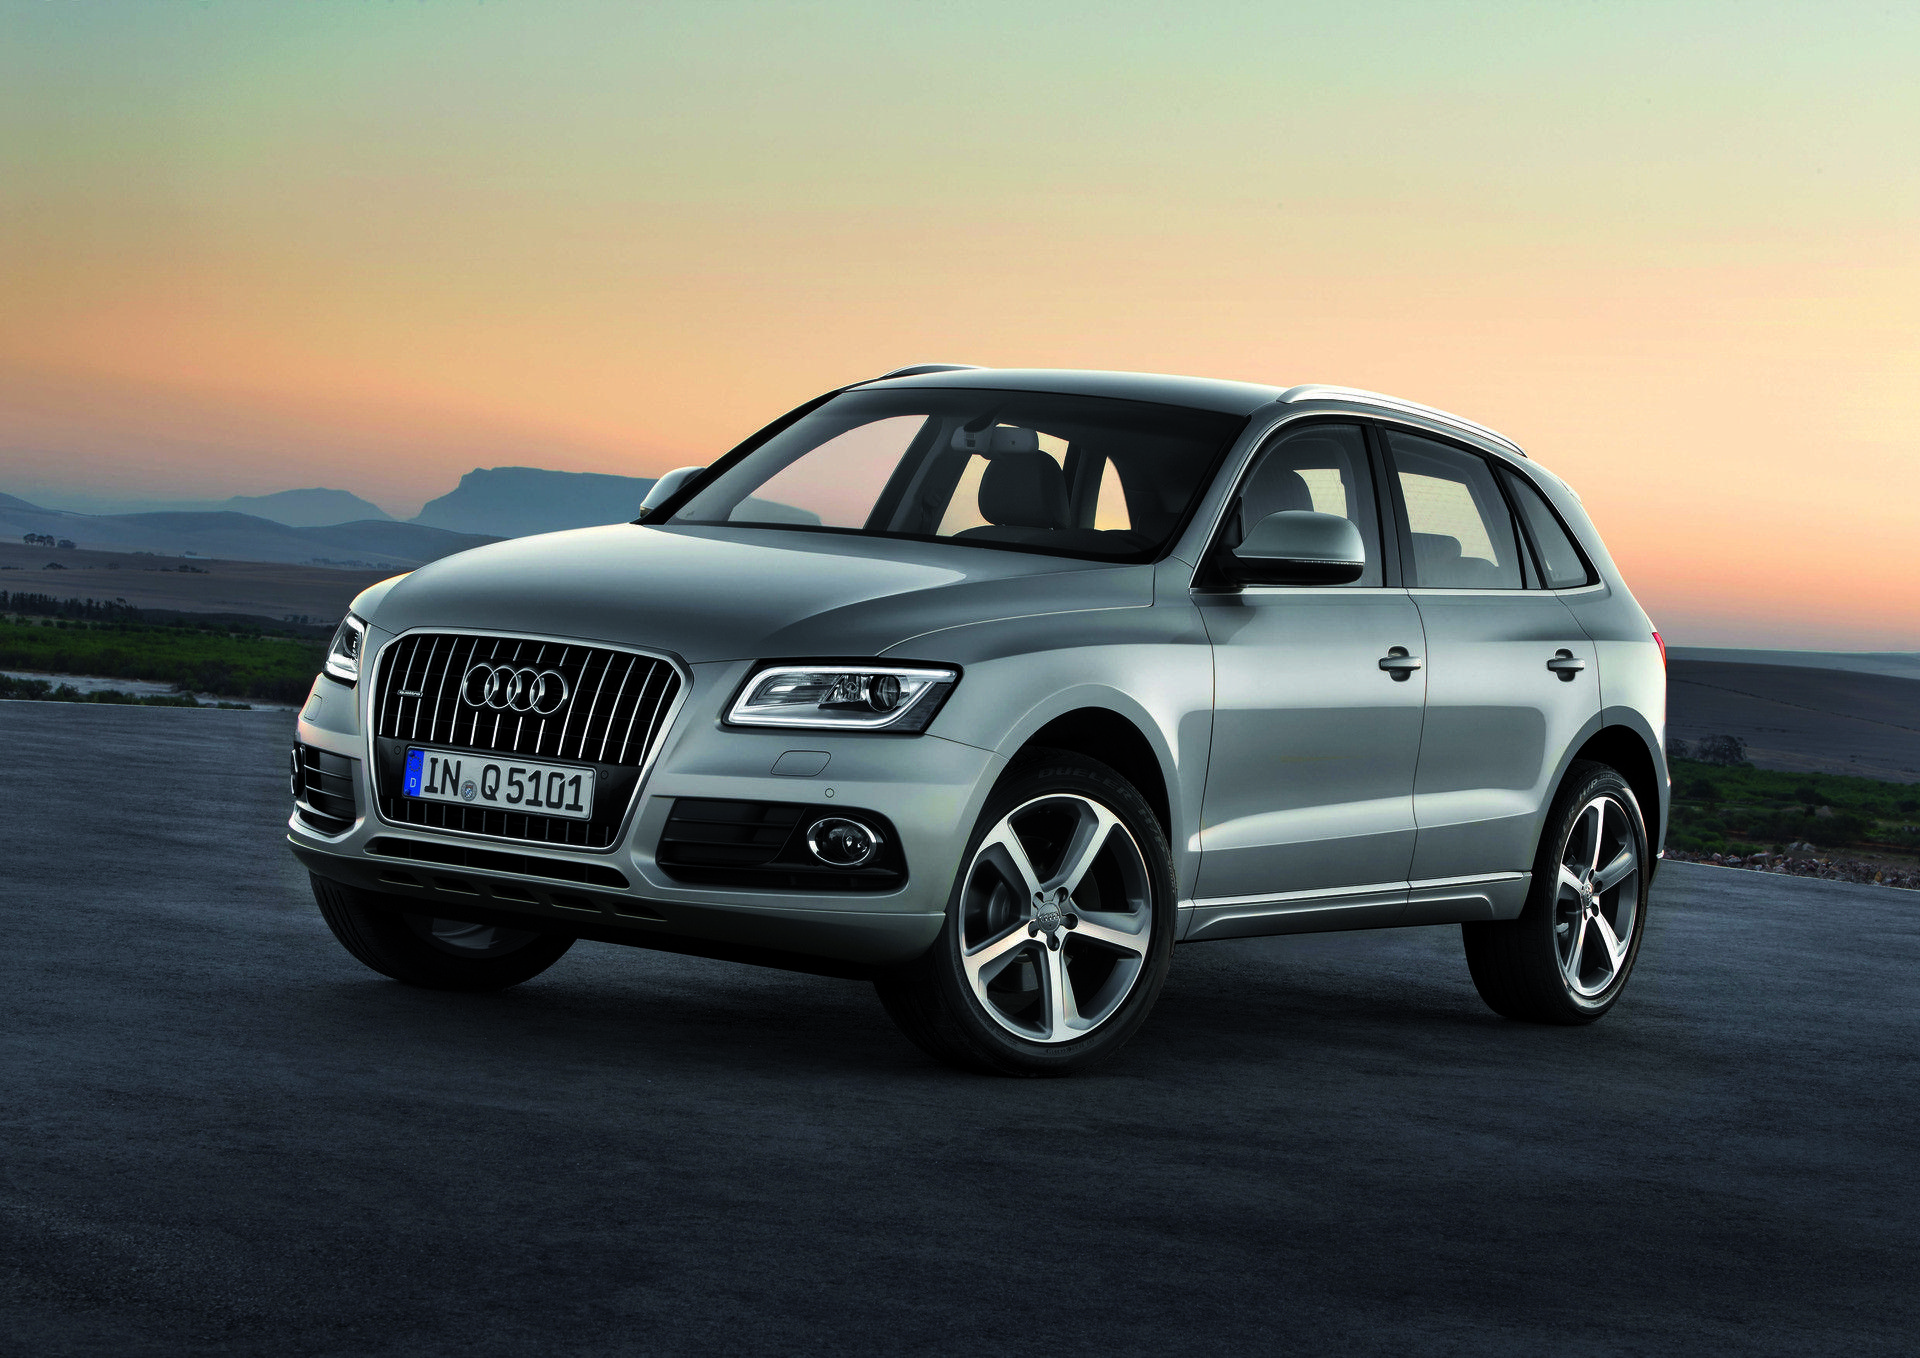 Audi Q5 wallpapers, Vehicles, HQ Audi Q5 pictures | 4K Wallpapers